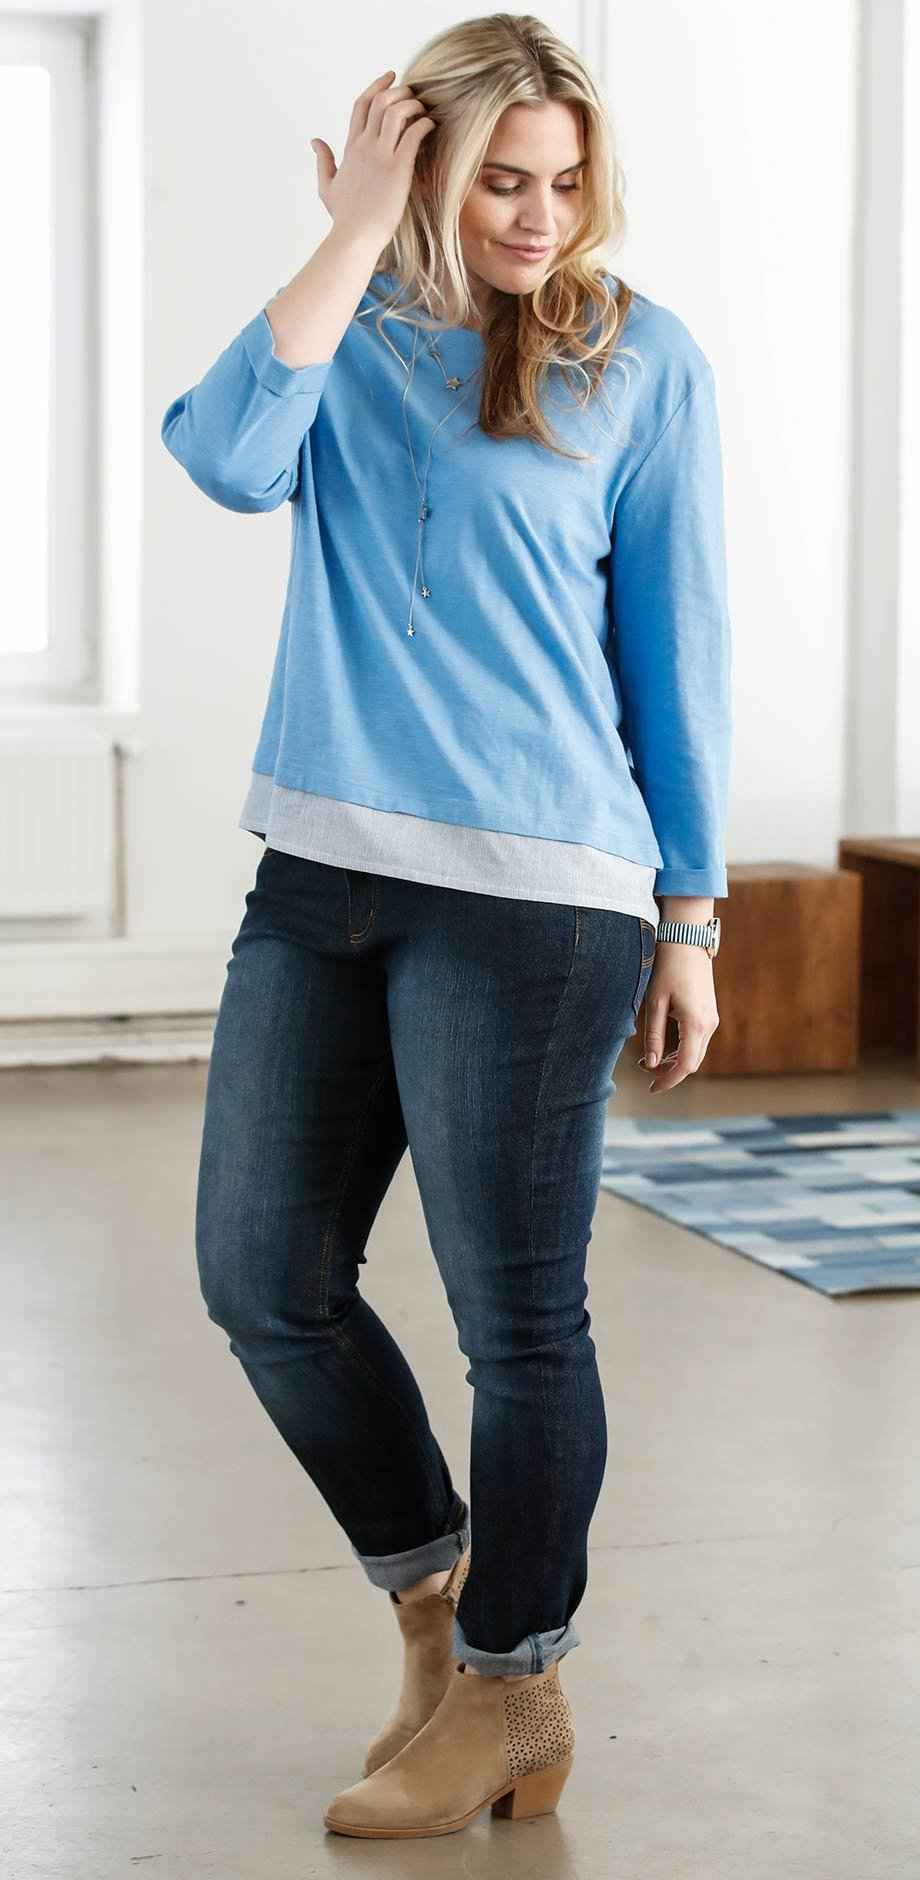 Damen - 3/4-Arm-Shirt in 2-in-1-Optik - mittelblau